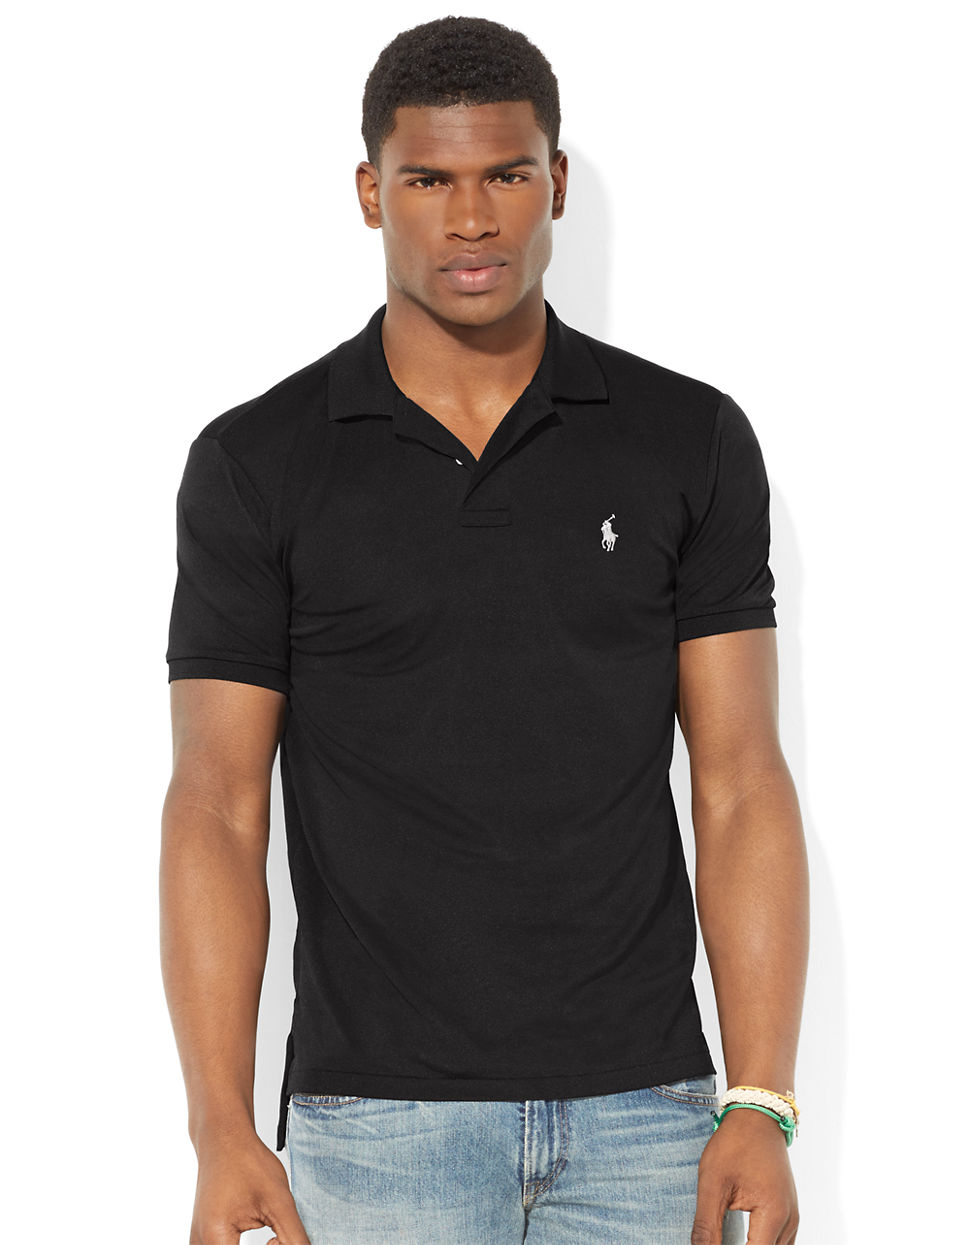 Polo ralph lauren black male models really. All